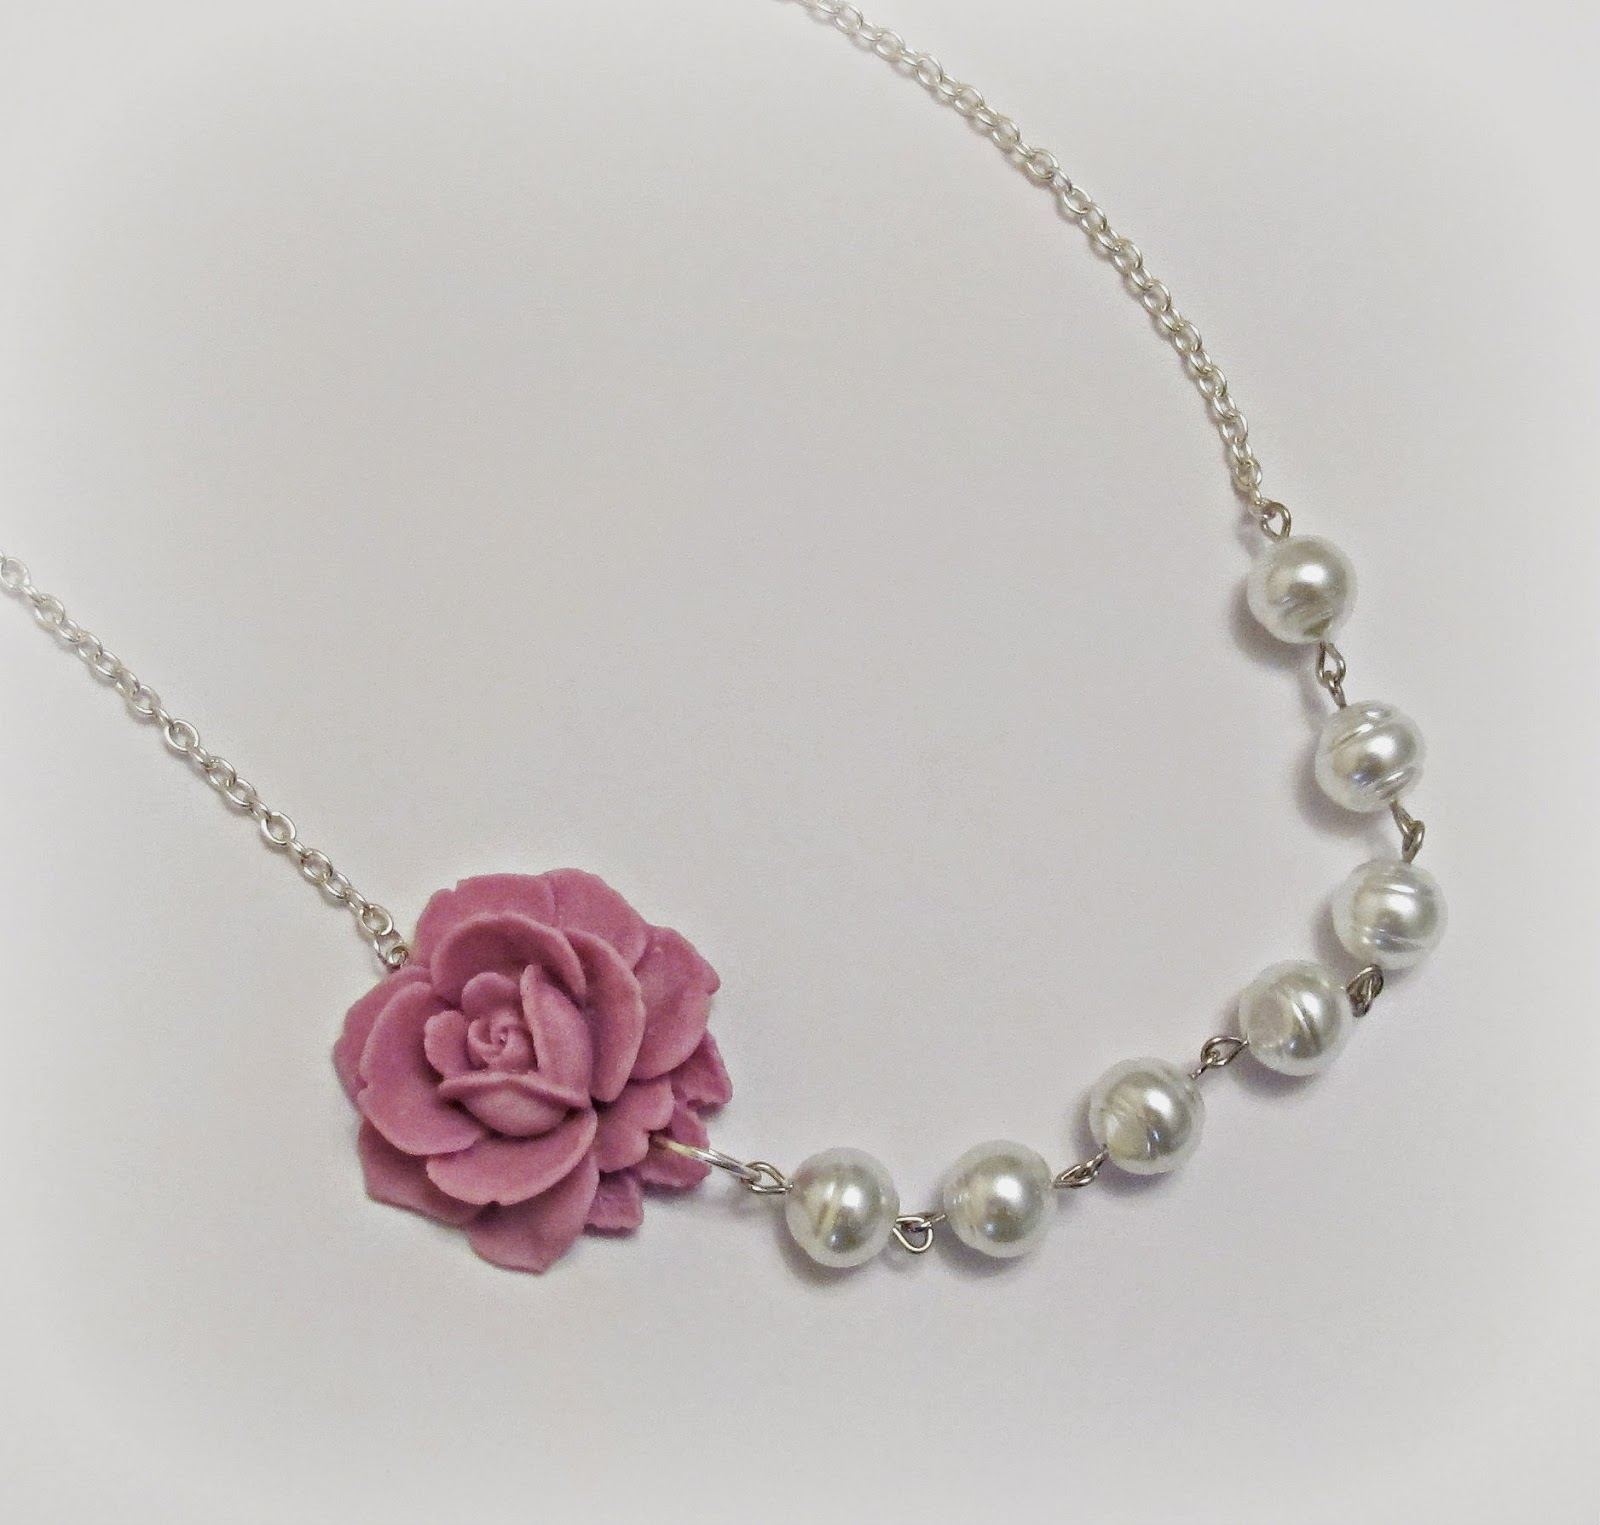 image indis asymmetrical necklace rose lilac mauve snow white glass pearls two cheeky monkeys silver